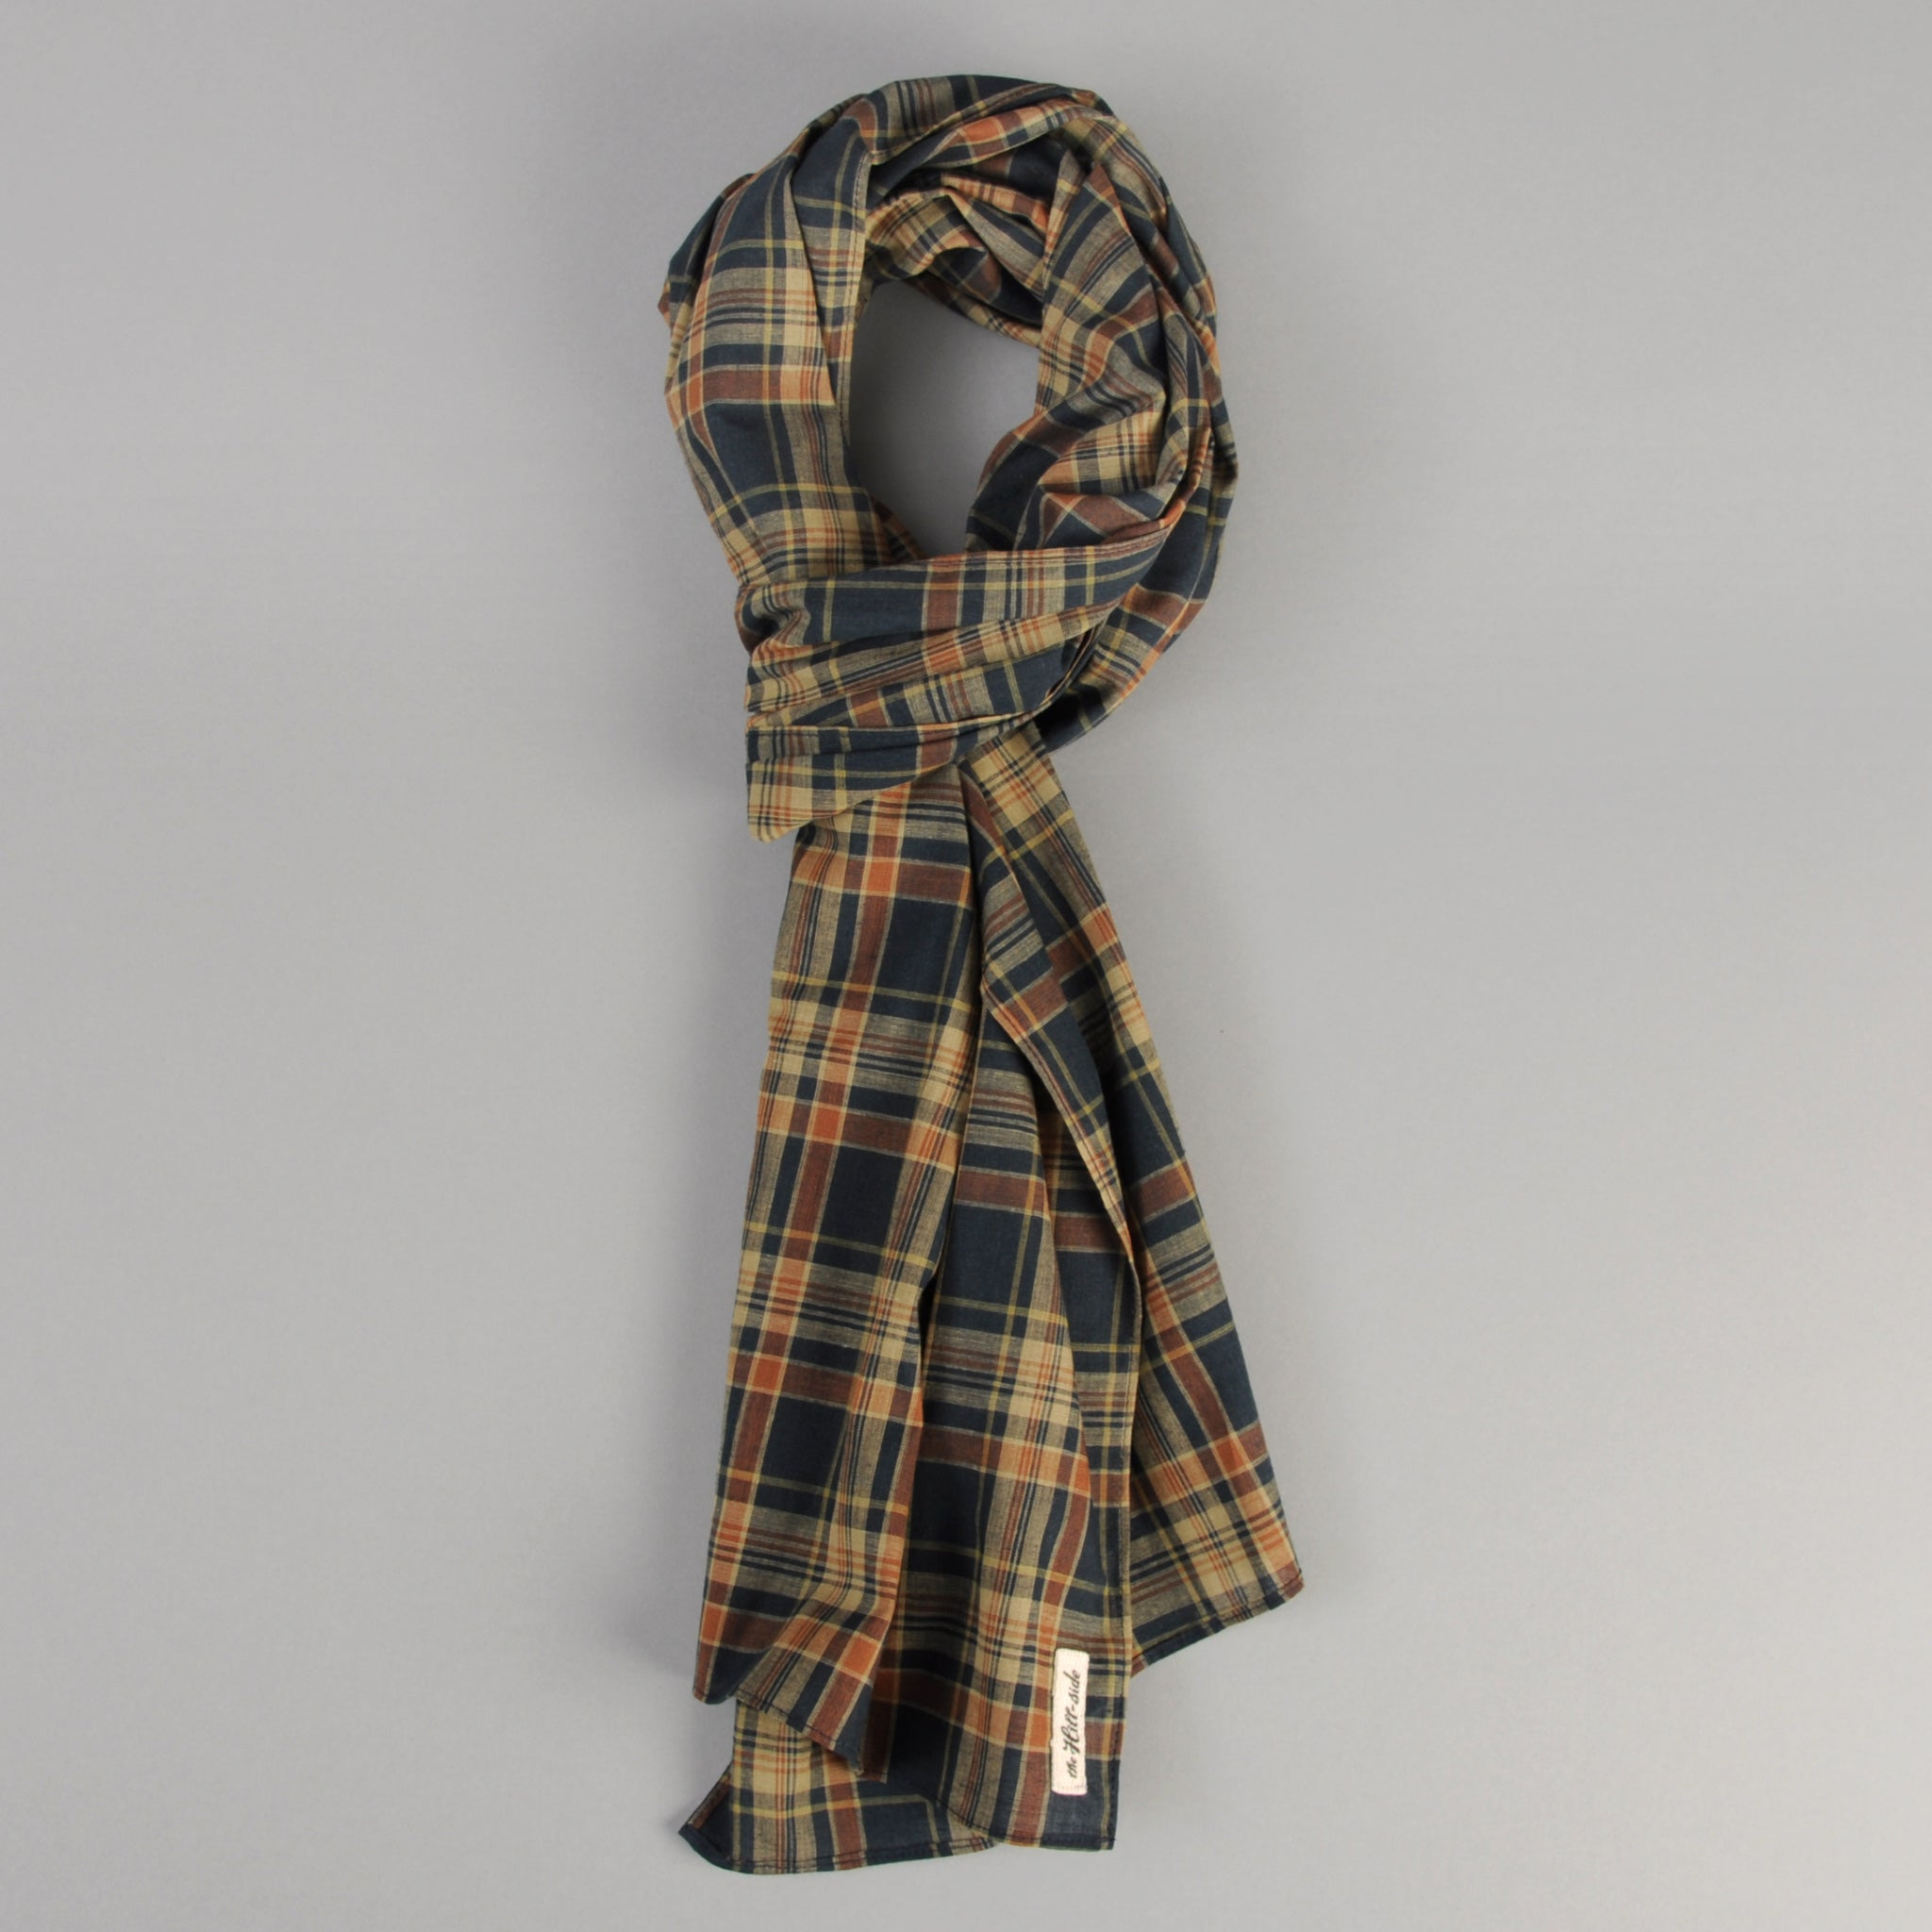 The Hill-Side - OD Indian Madras Scarf, Navy / Orange Check - SC1-424 - image 1